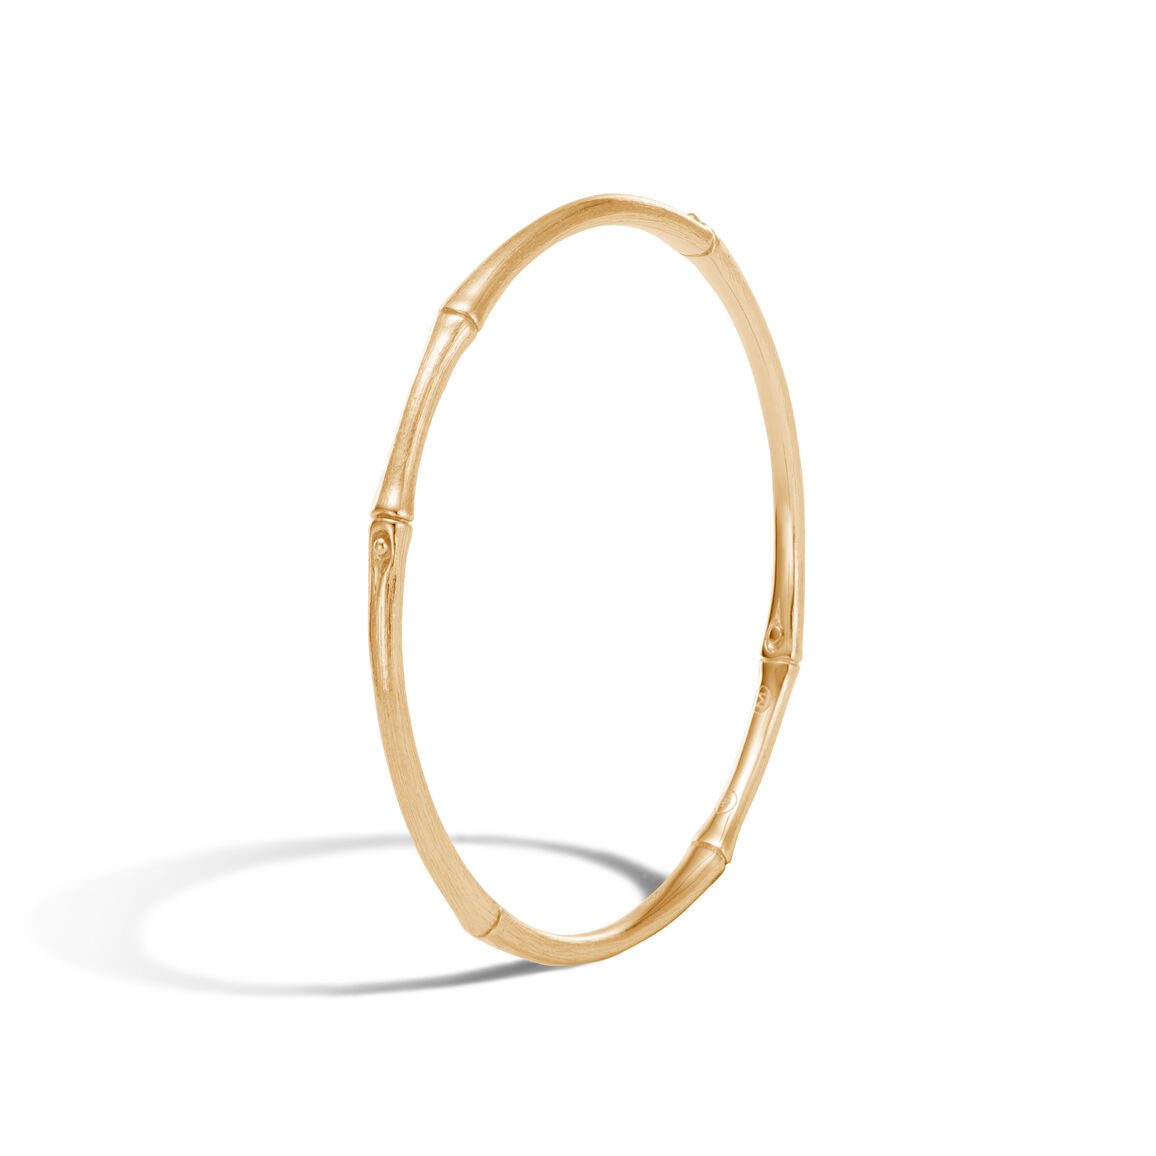 Bamboo 3.5MM Bangle in Brushed 18K Gold